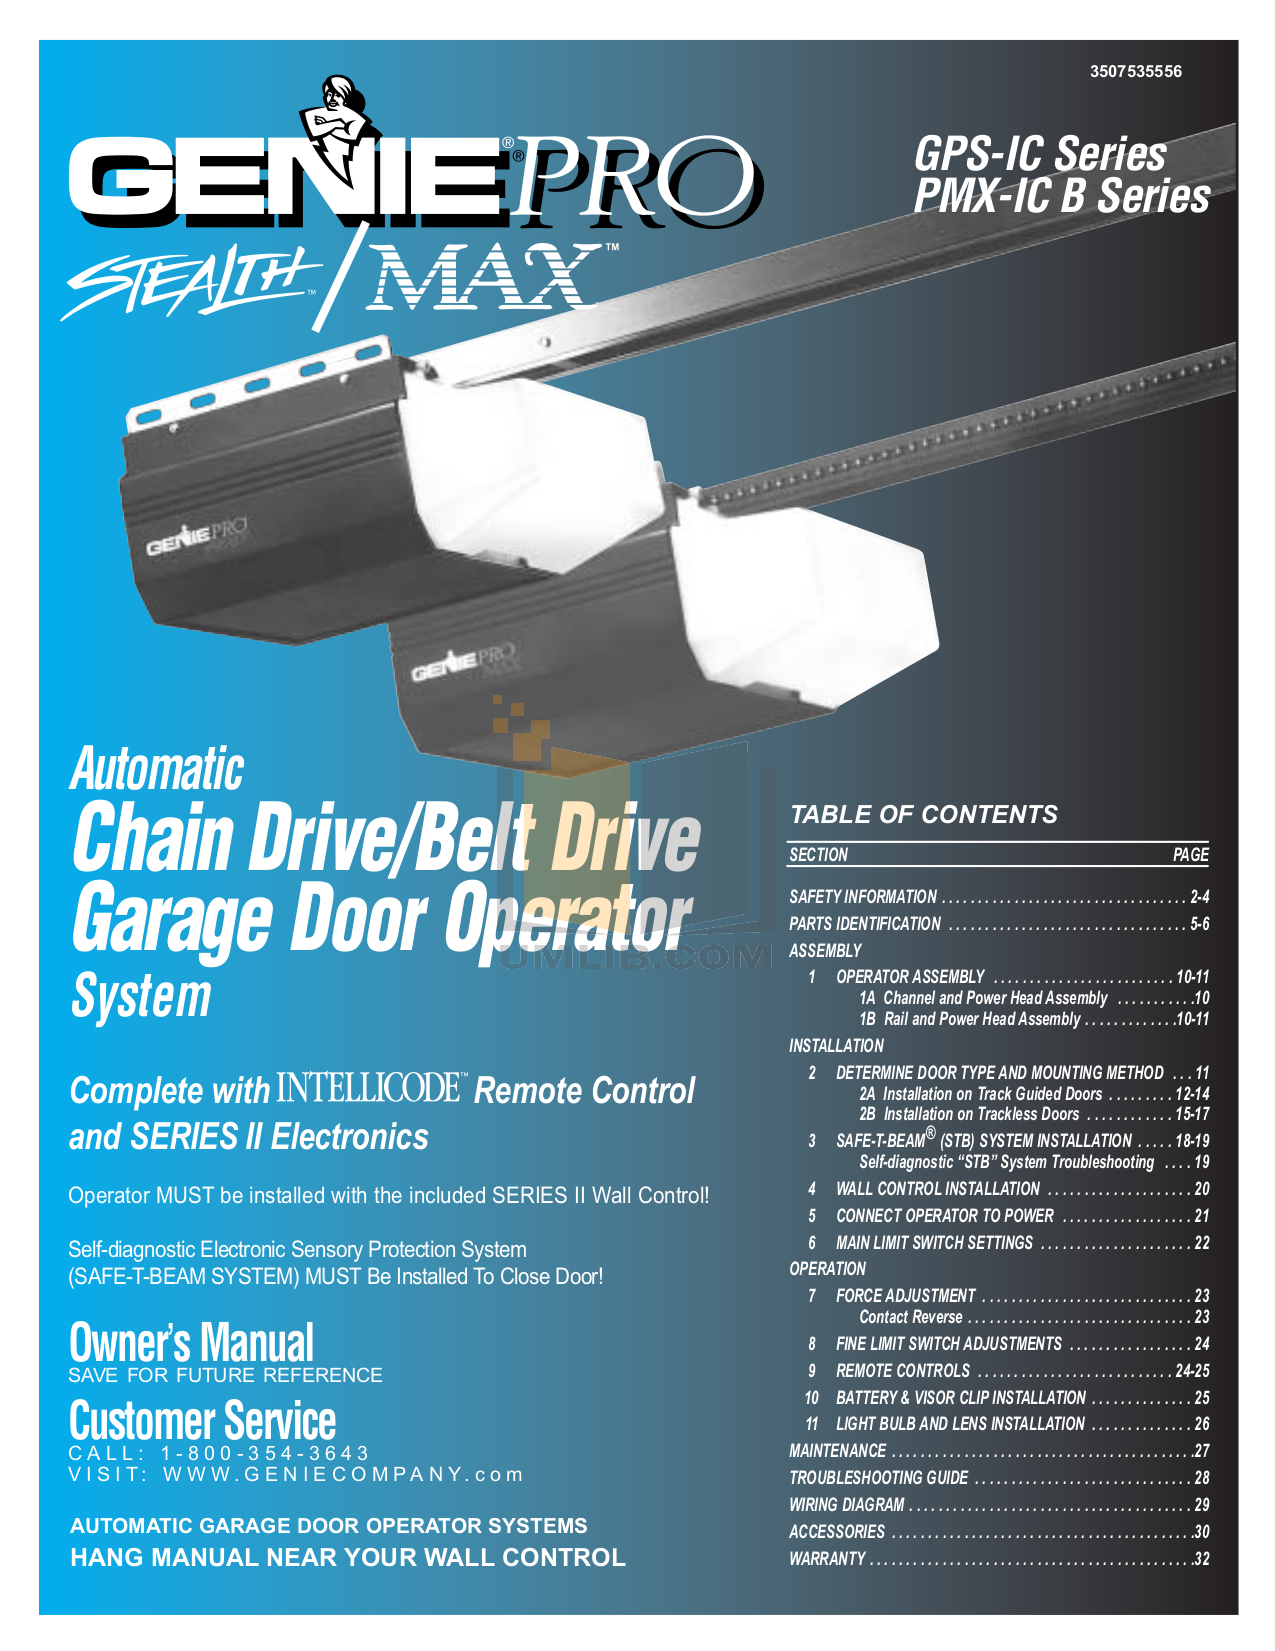 Download Free Pdf For Genie Promax Garage Door Opener Other Manual